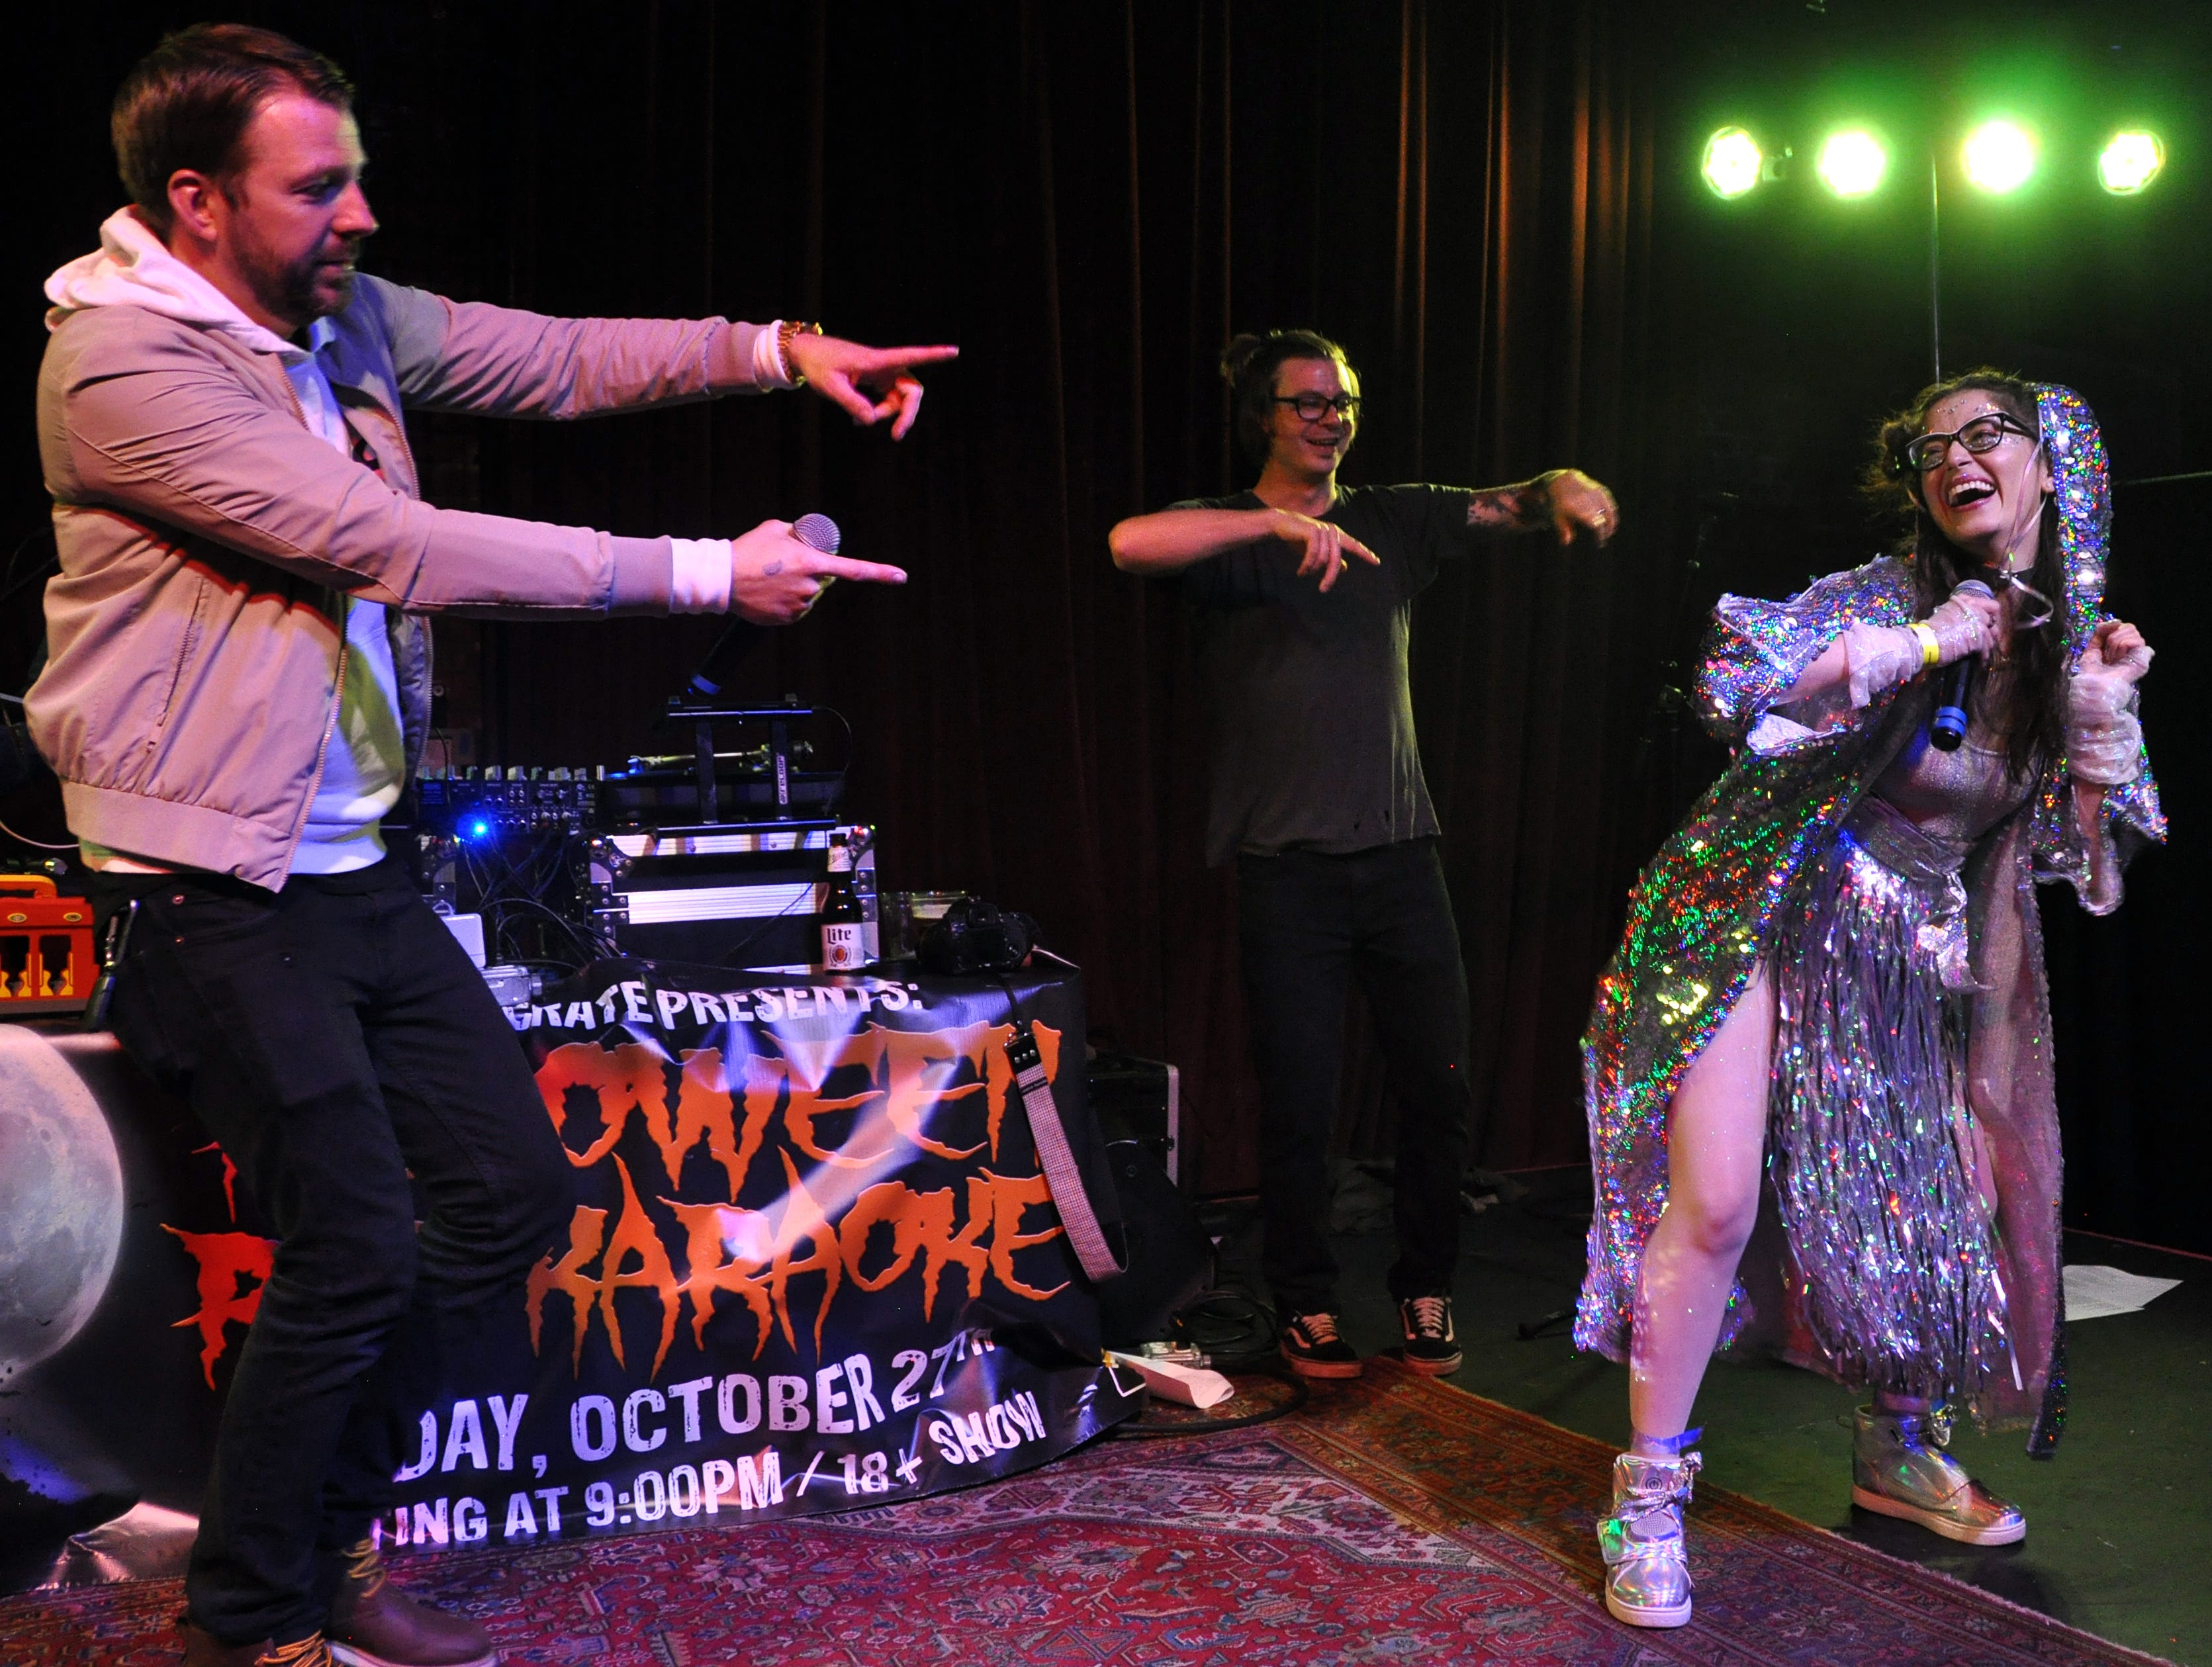 Catherine Holland gets some encouragement from Danny, left, and Wes Eisenhauer during her performance at the 10th Annual Halloween Rap Karaoke show at Icon Lounge Friday night. The event is was created by the Sioux Falls band Soulcrate.